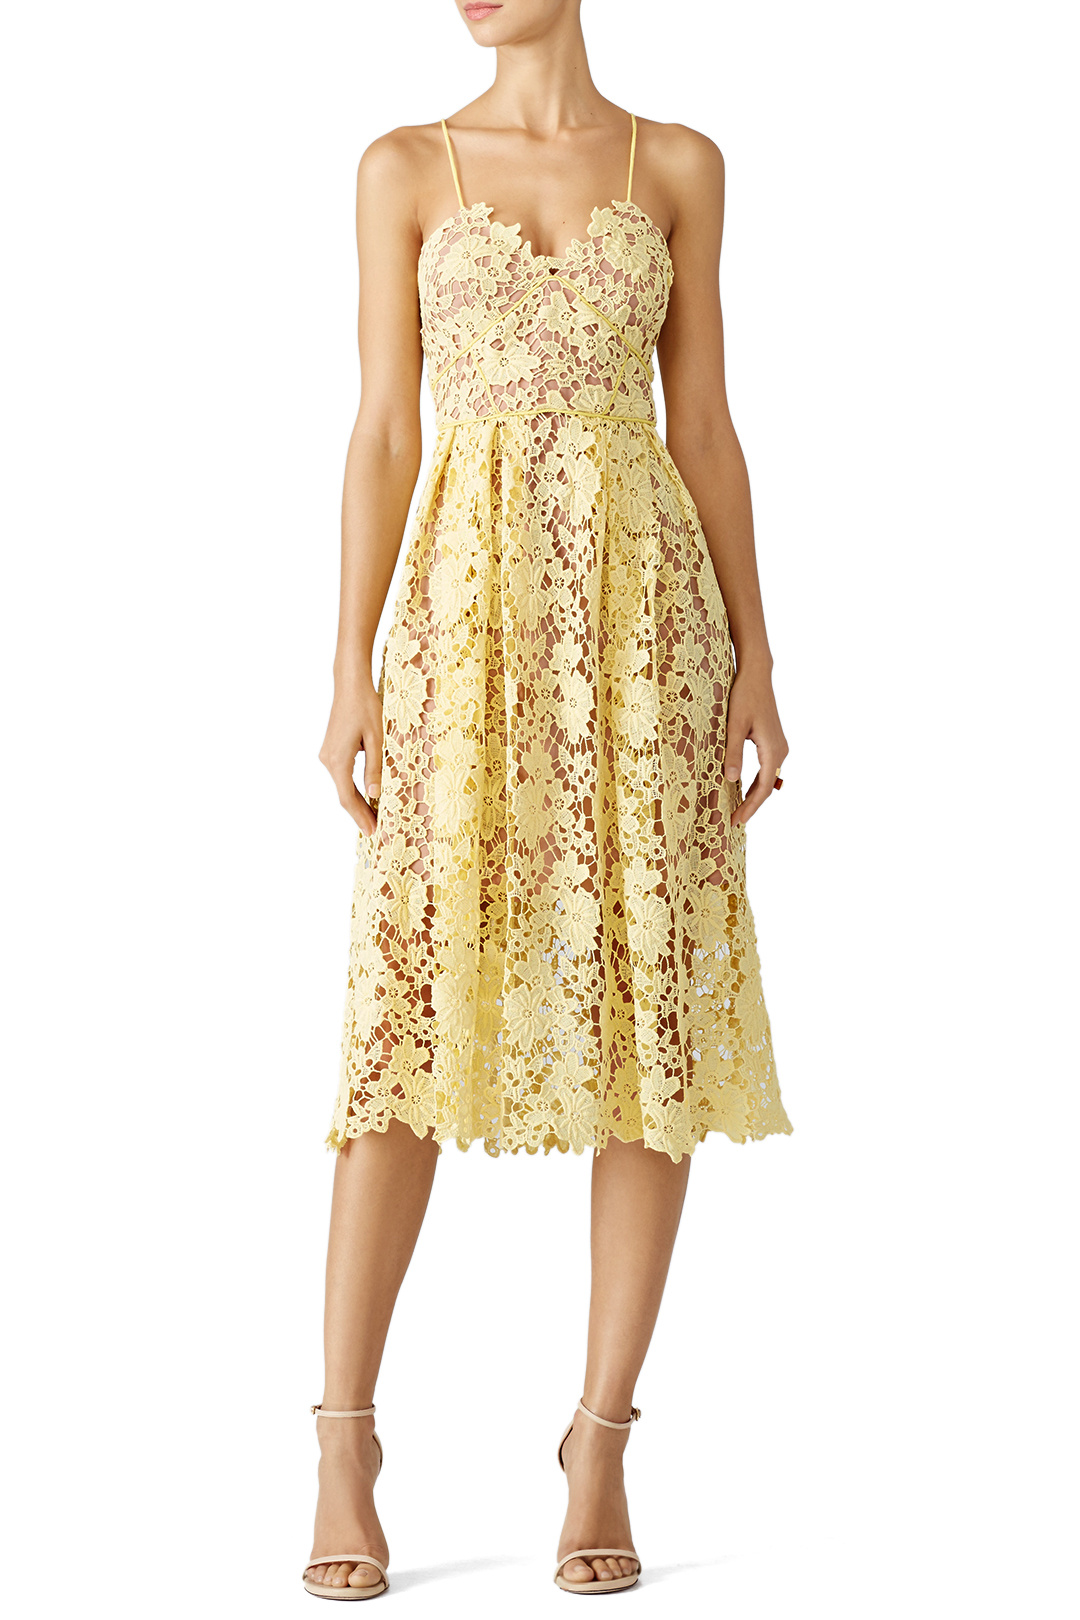 Slate & Willow Yellow Lace